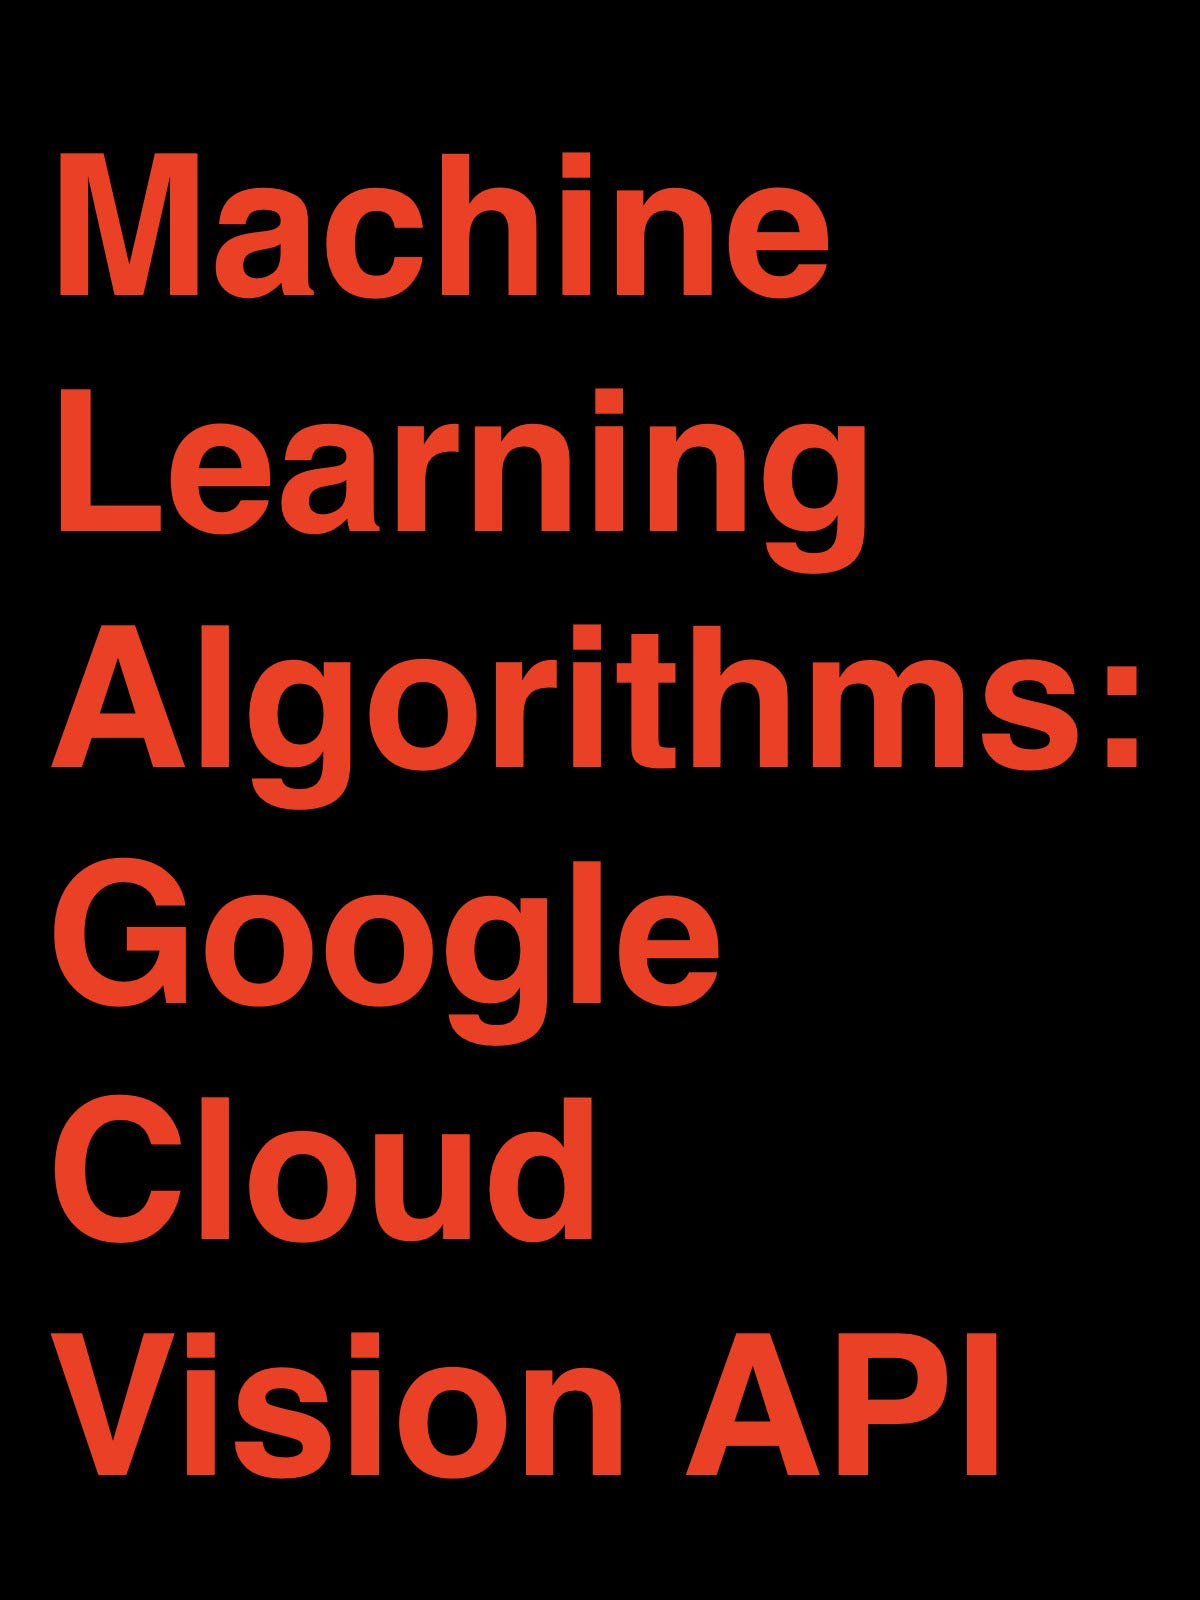 Machine Learning Algorithms: Google Cloud Vision API